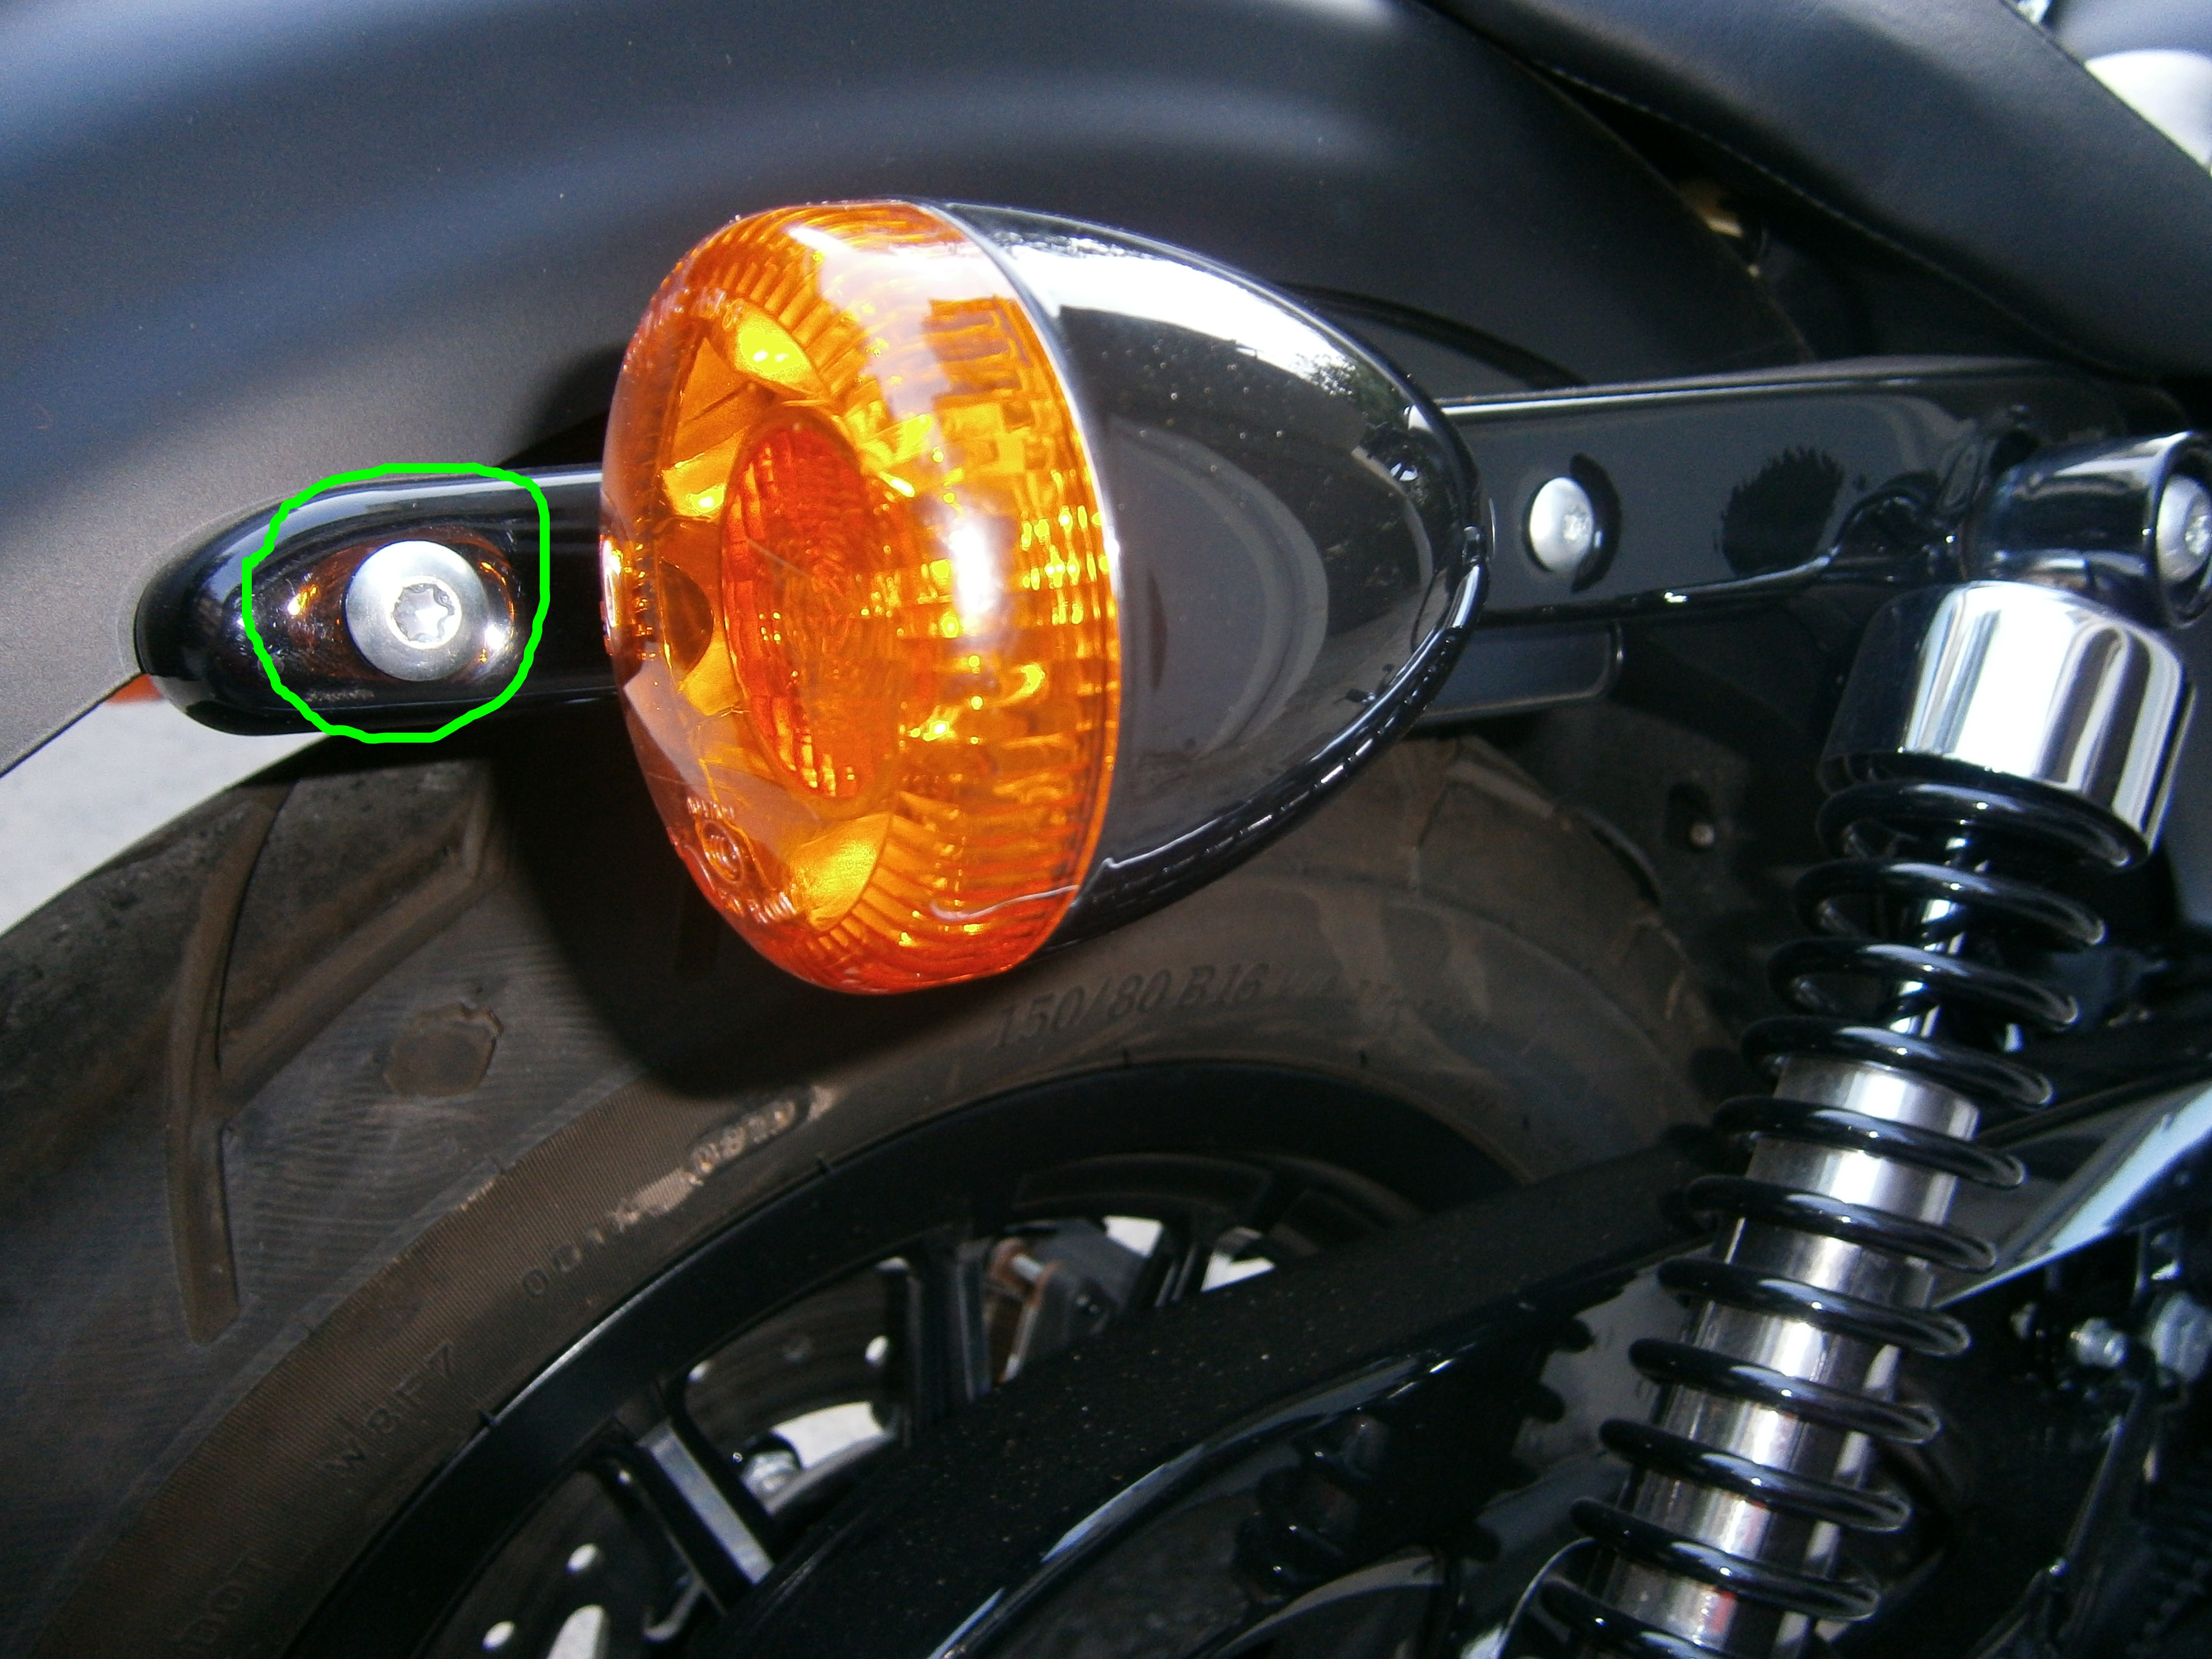 How-to: Install Side-Mount License Plate on a Harley ... on